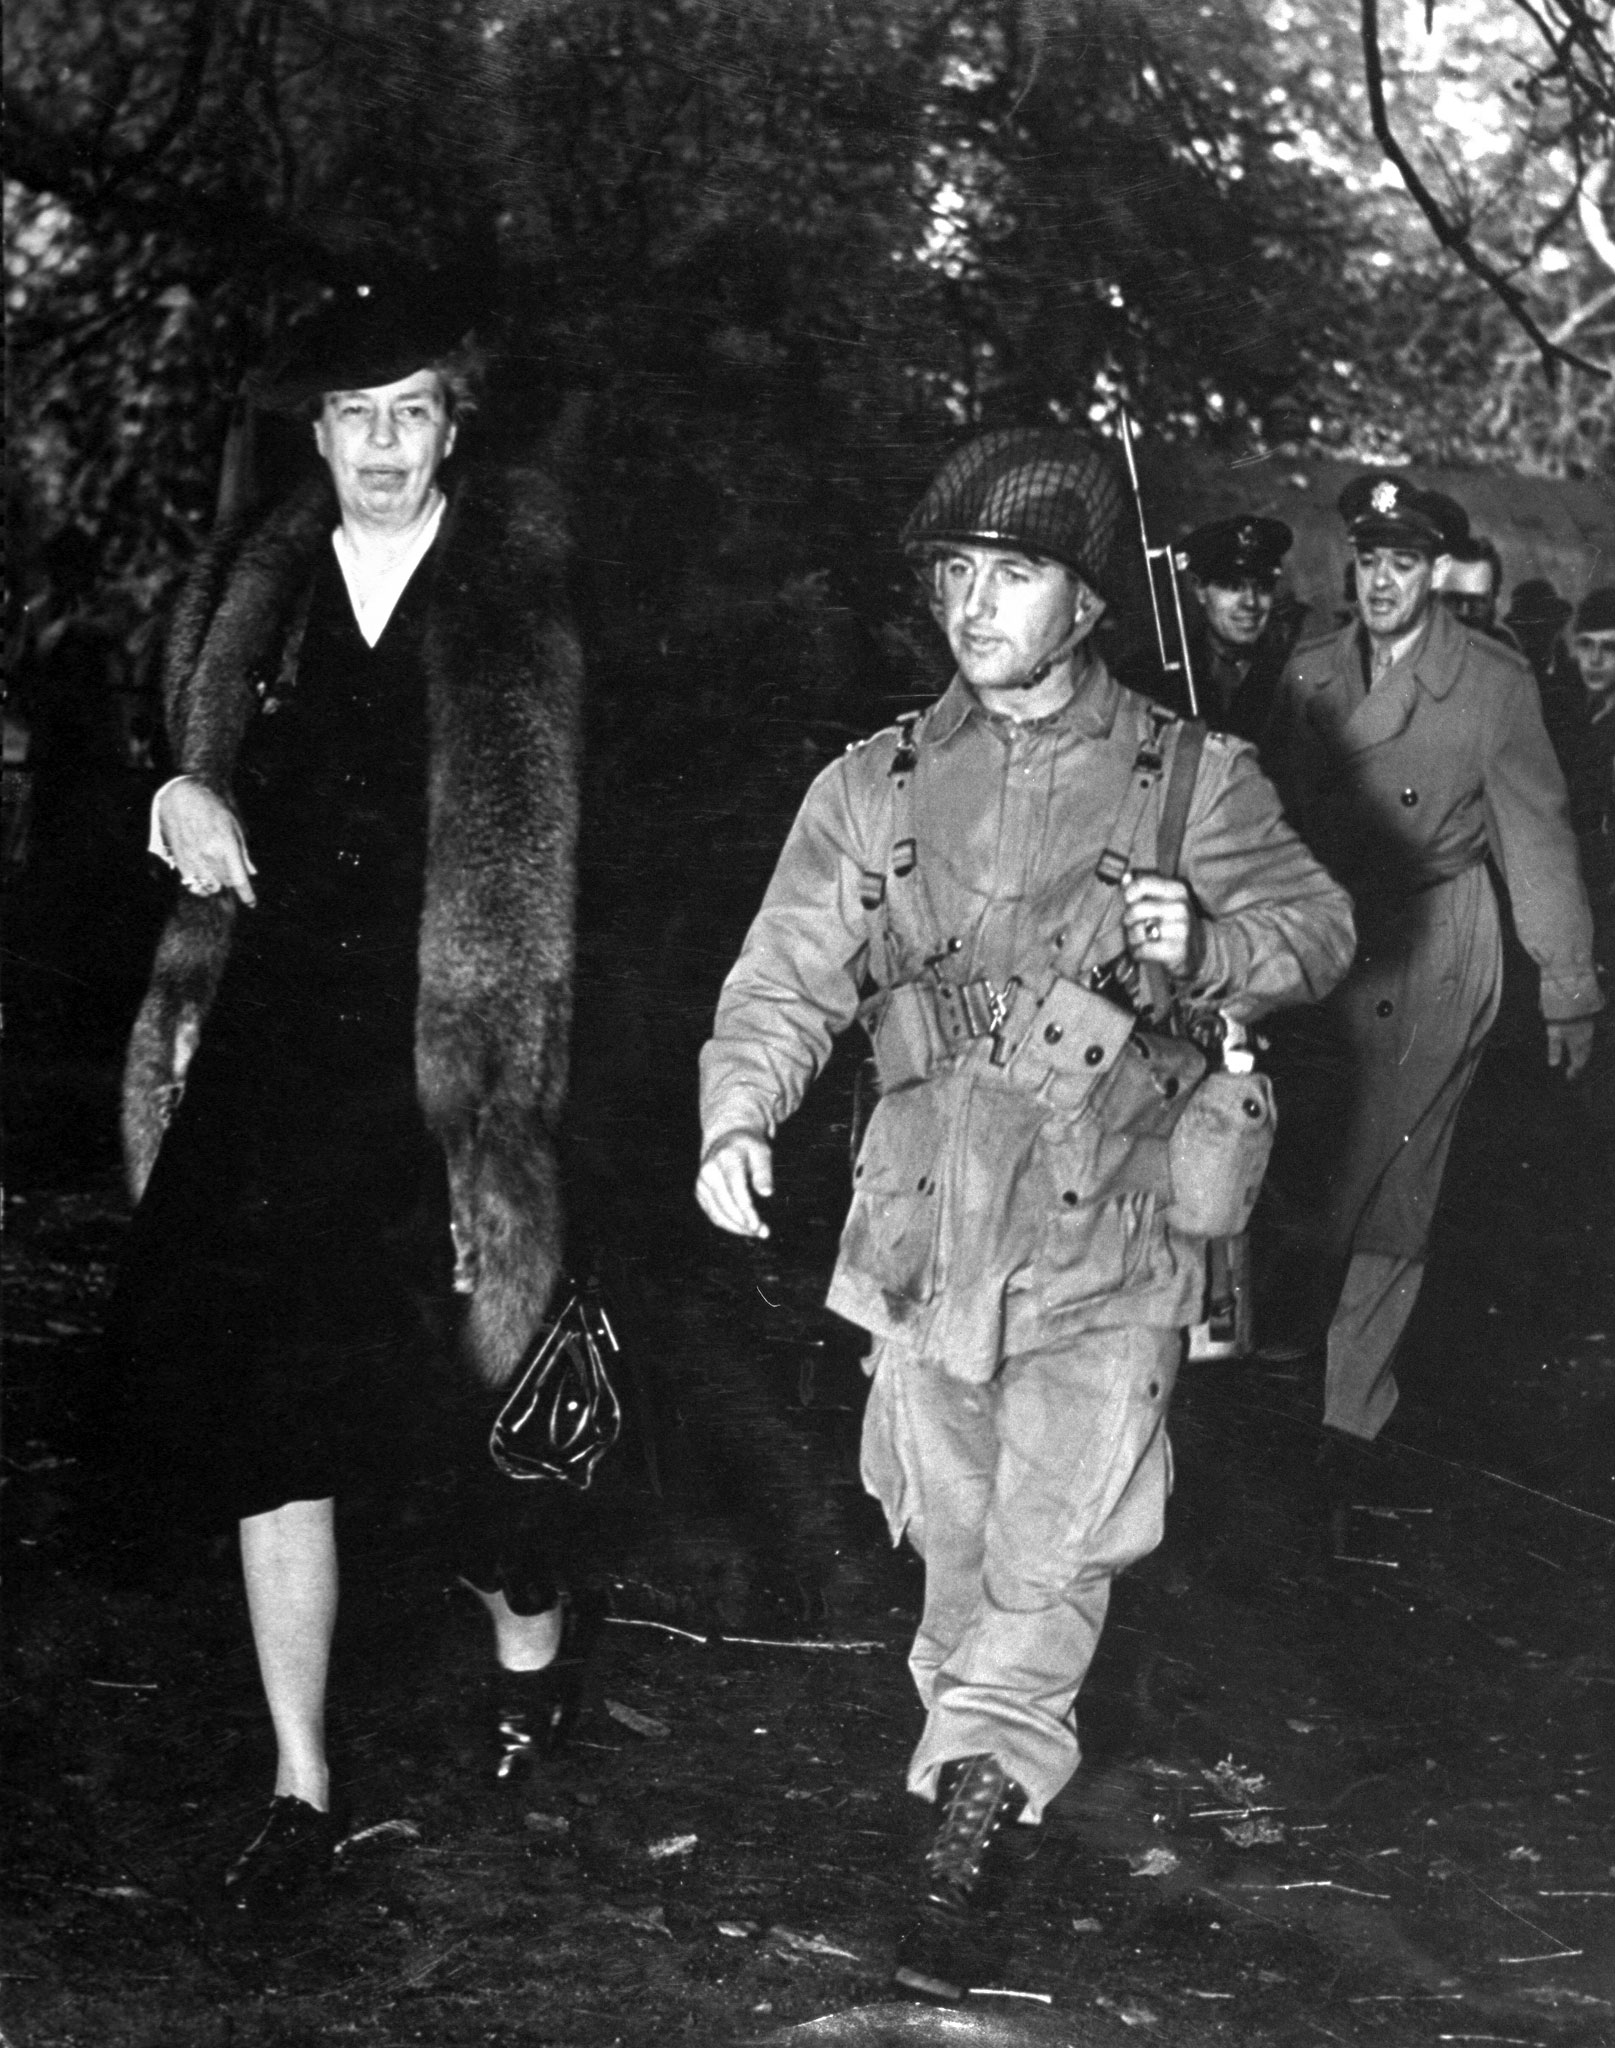 Eleanor Roosevelt walking and talking with the commanding officer of a group of American paratroopers, 1942.